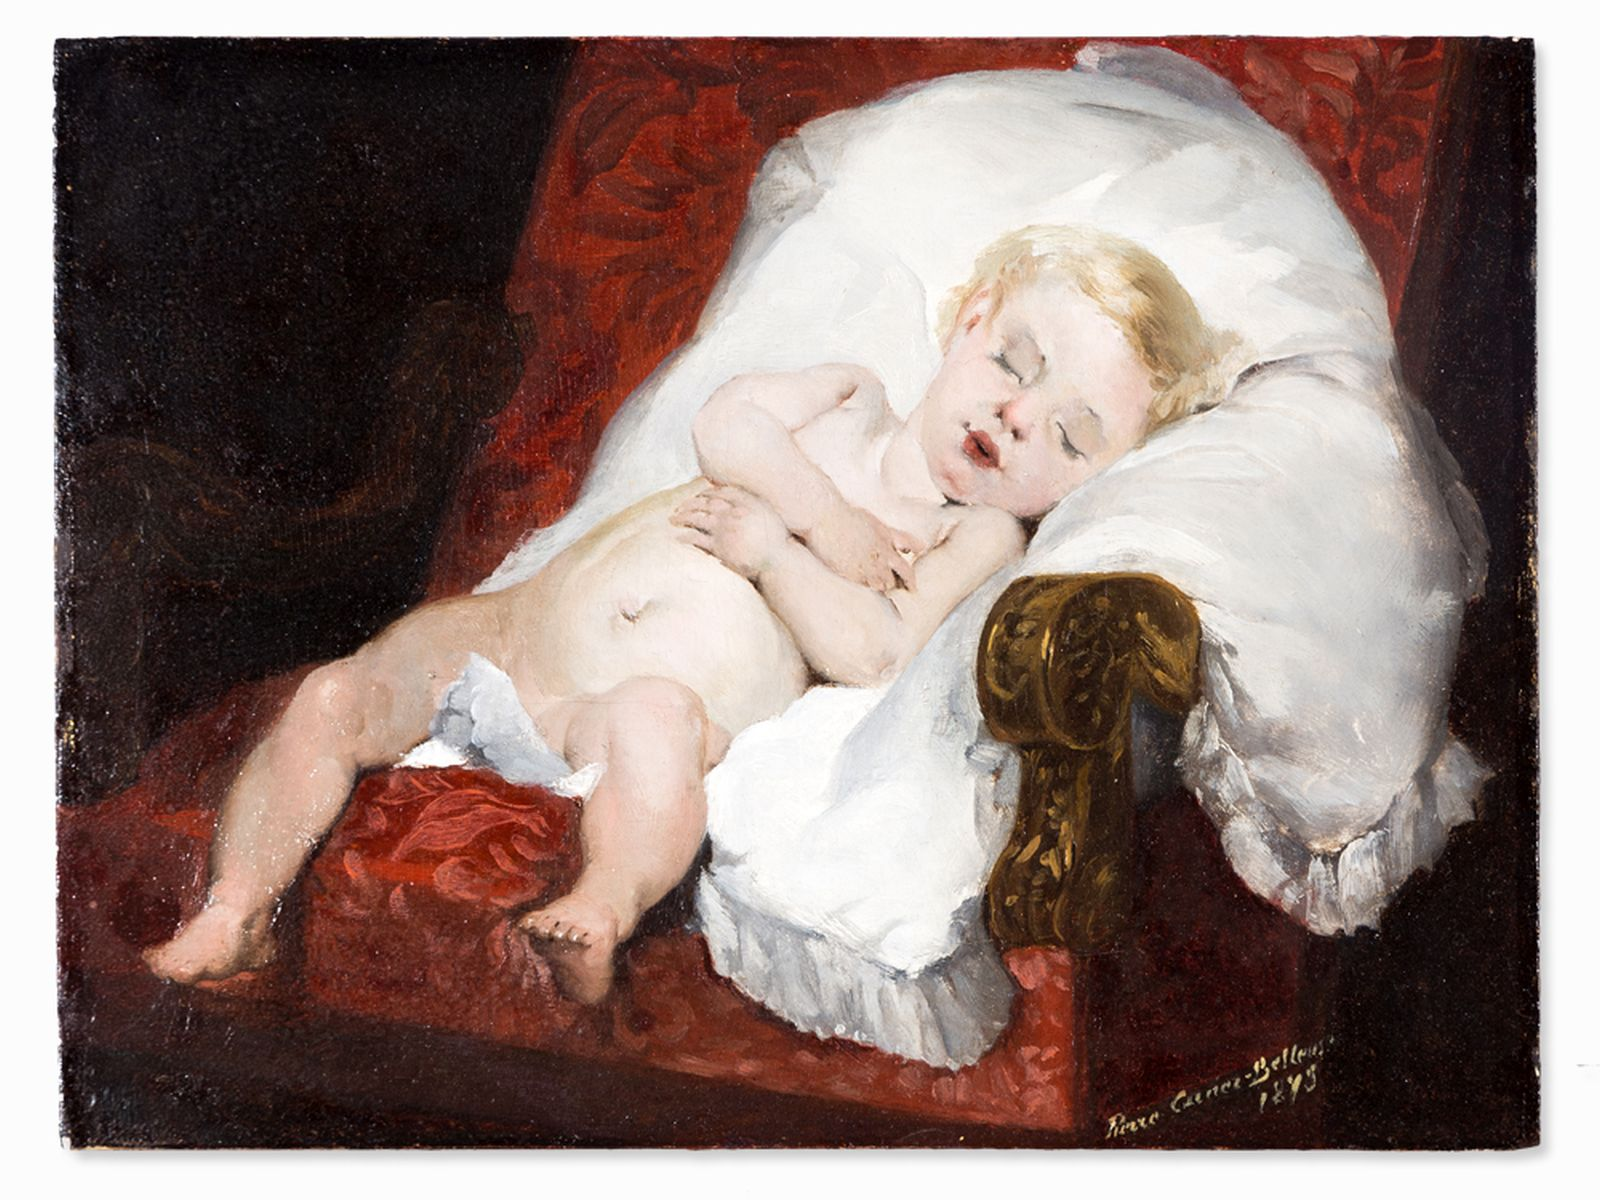 #30 Pierre Carrier-Belleuse (1851-1932), Sweet Dreams, Oil, 1893 | Pierre Carrier-Belleuse (1851-1932), Image